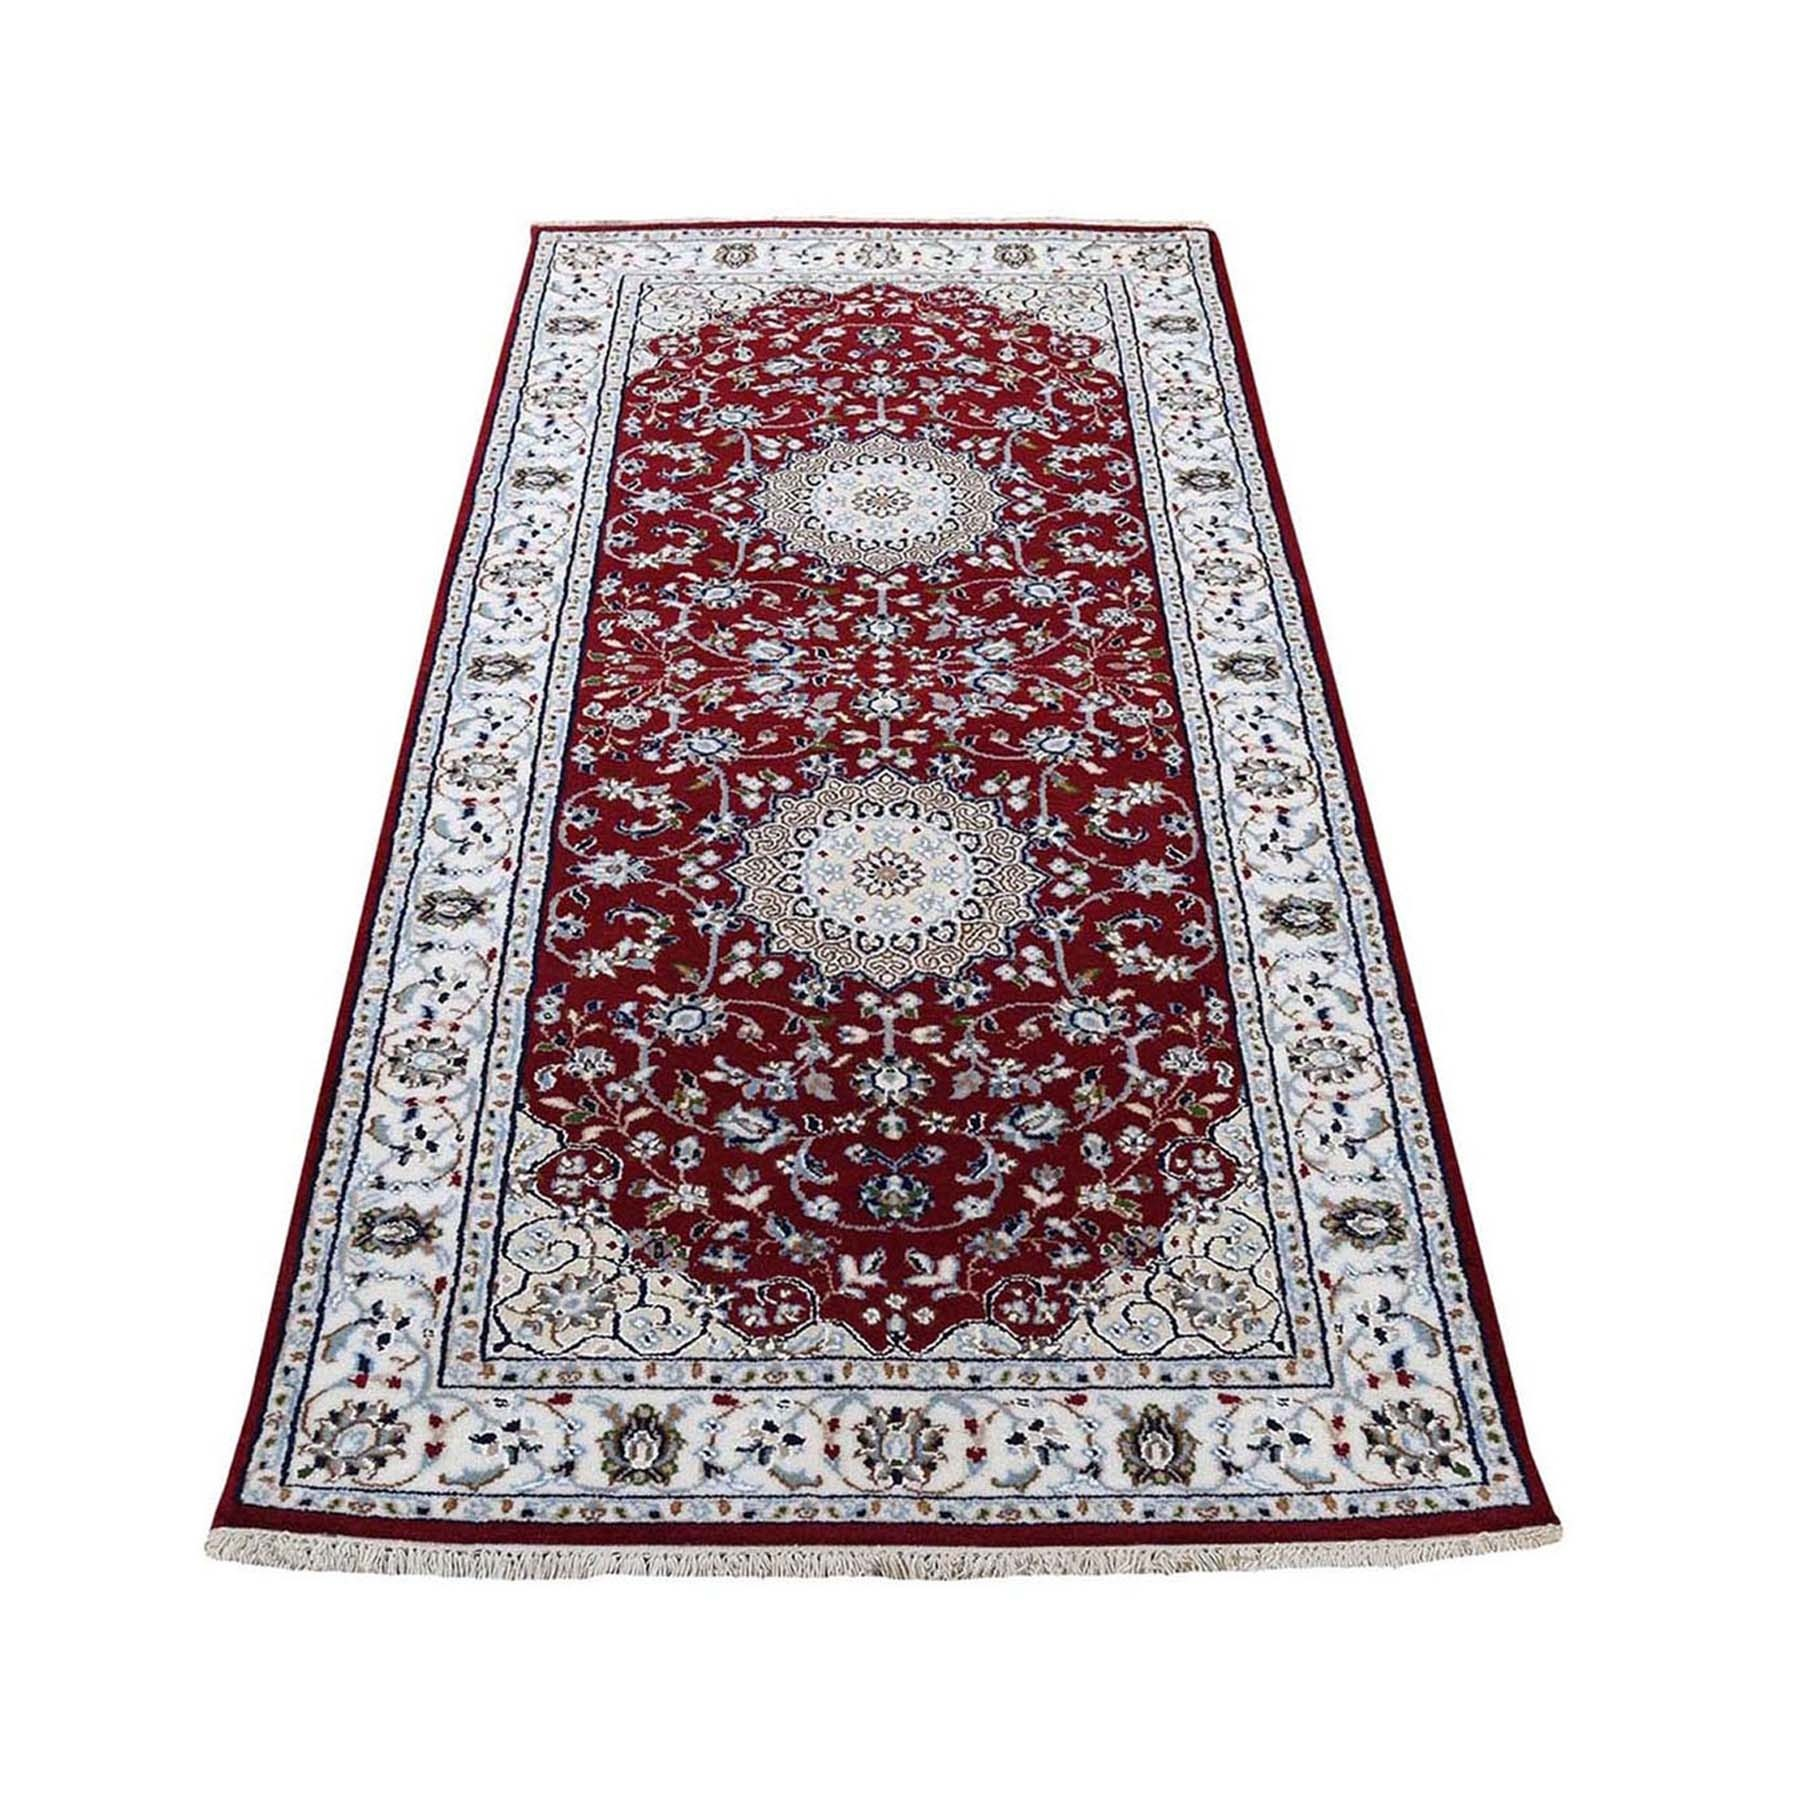 "2'7""x6'2"" Red Nain Wool and Silk 250 KPSI Hand Knotted Oriental Runner Rug"